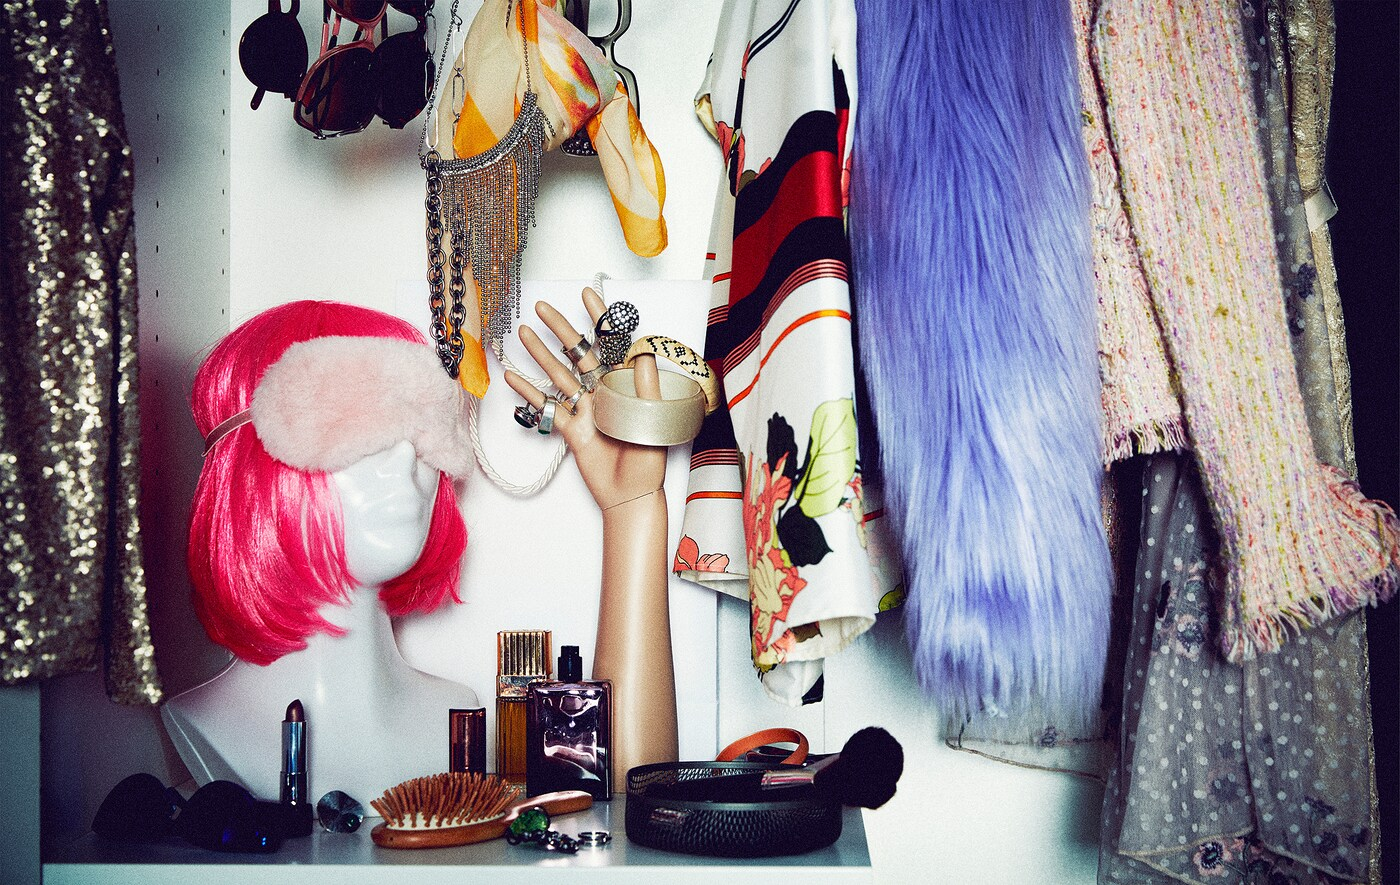 Section of a wardrobe filled with flamboyant party clothing and accessories; bust with neon wig, mannequin hand with rings.